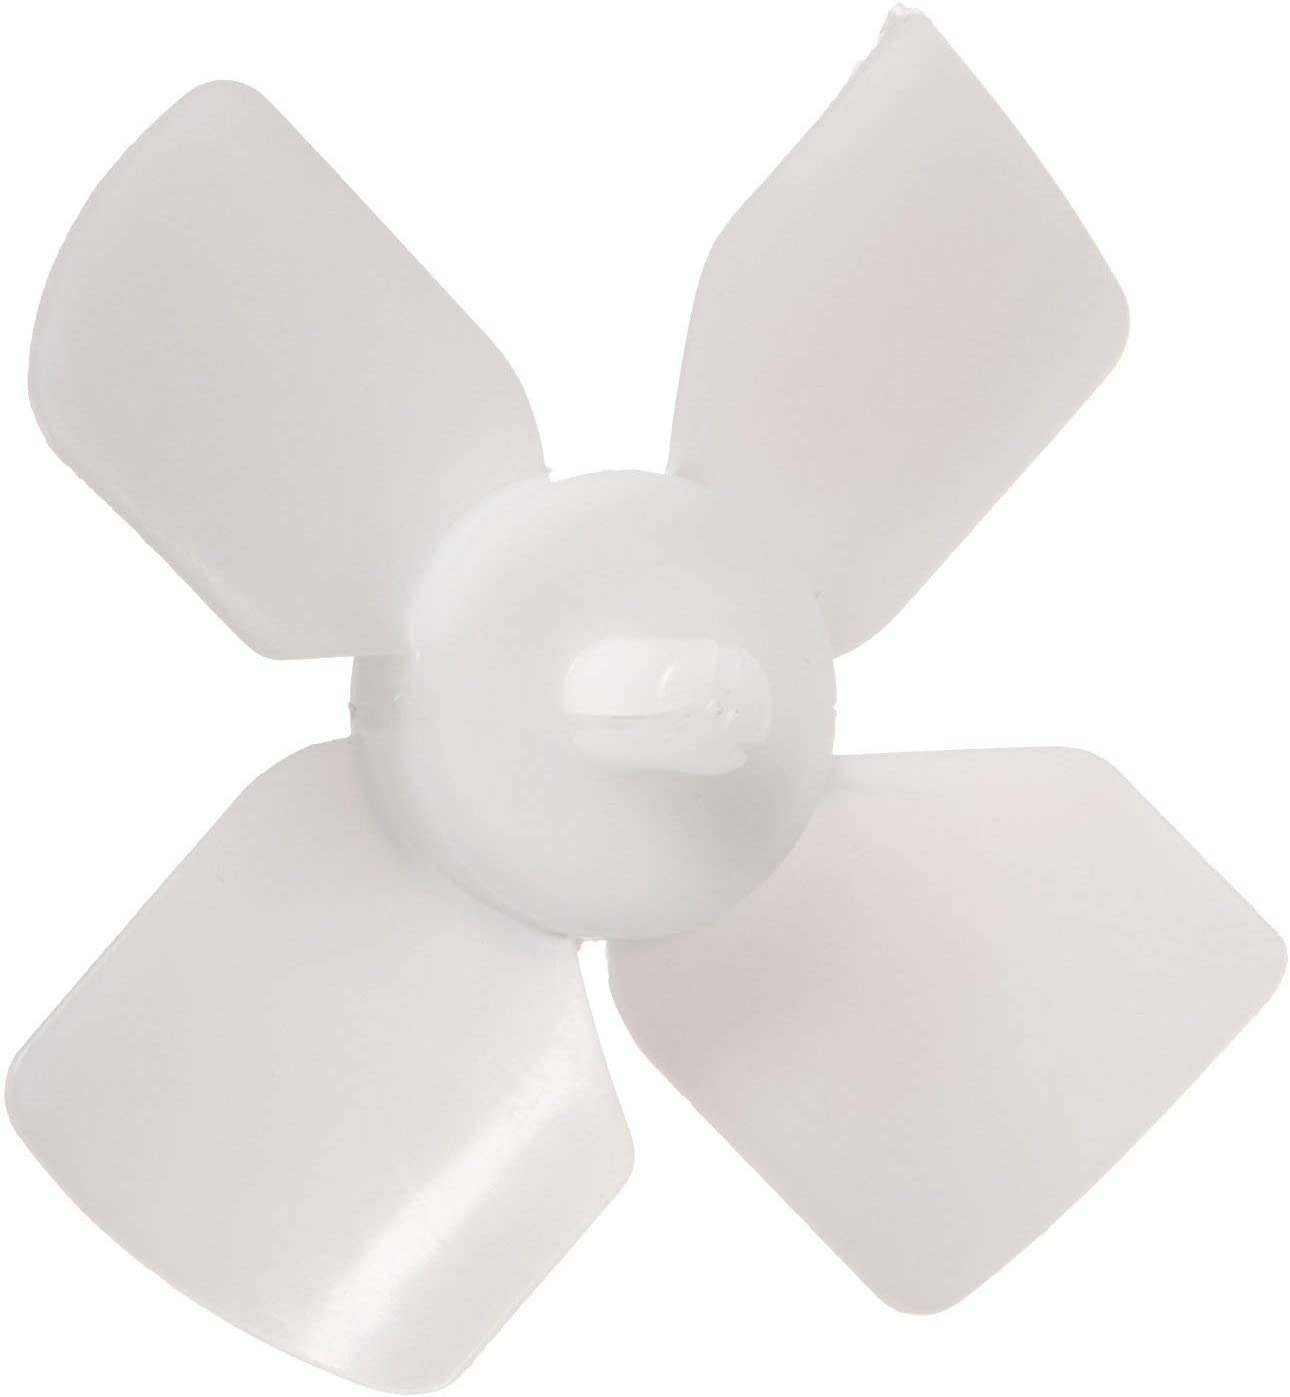 Lifetime Appliance 5308000010 Evaporator Fan Blade Compatible with Frigidaire Refrigerator